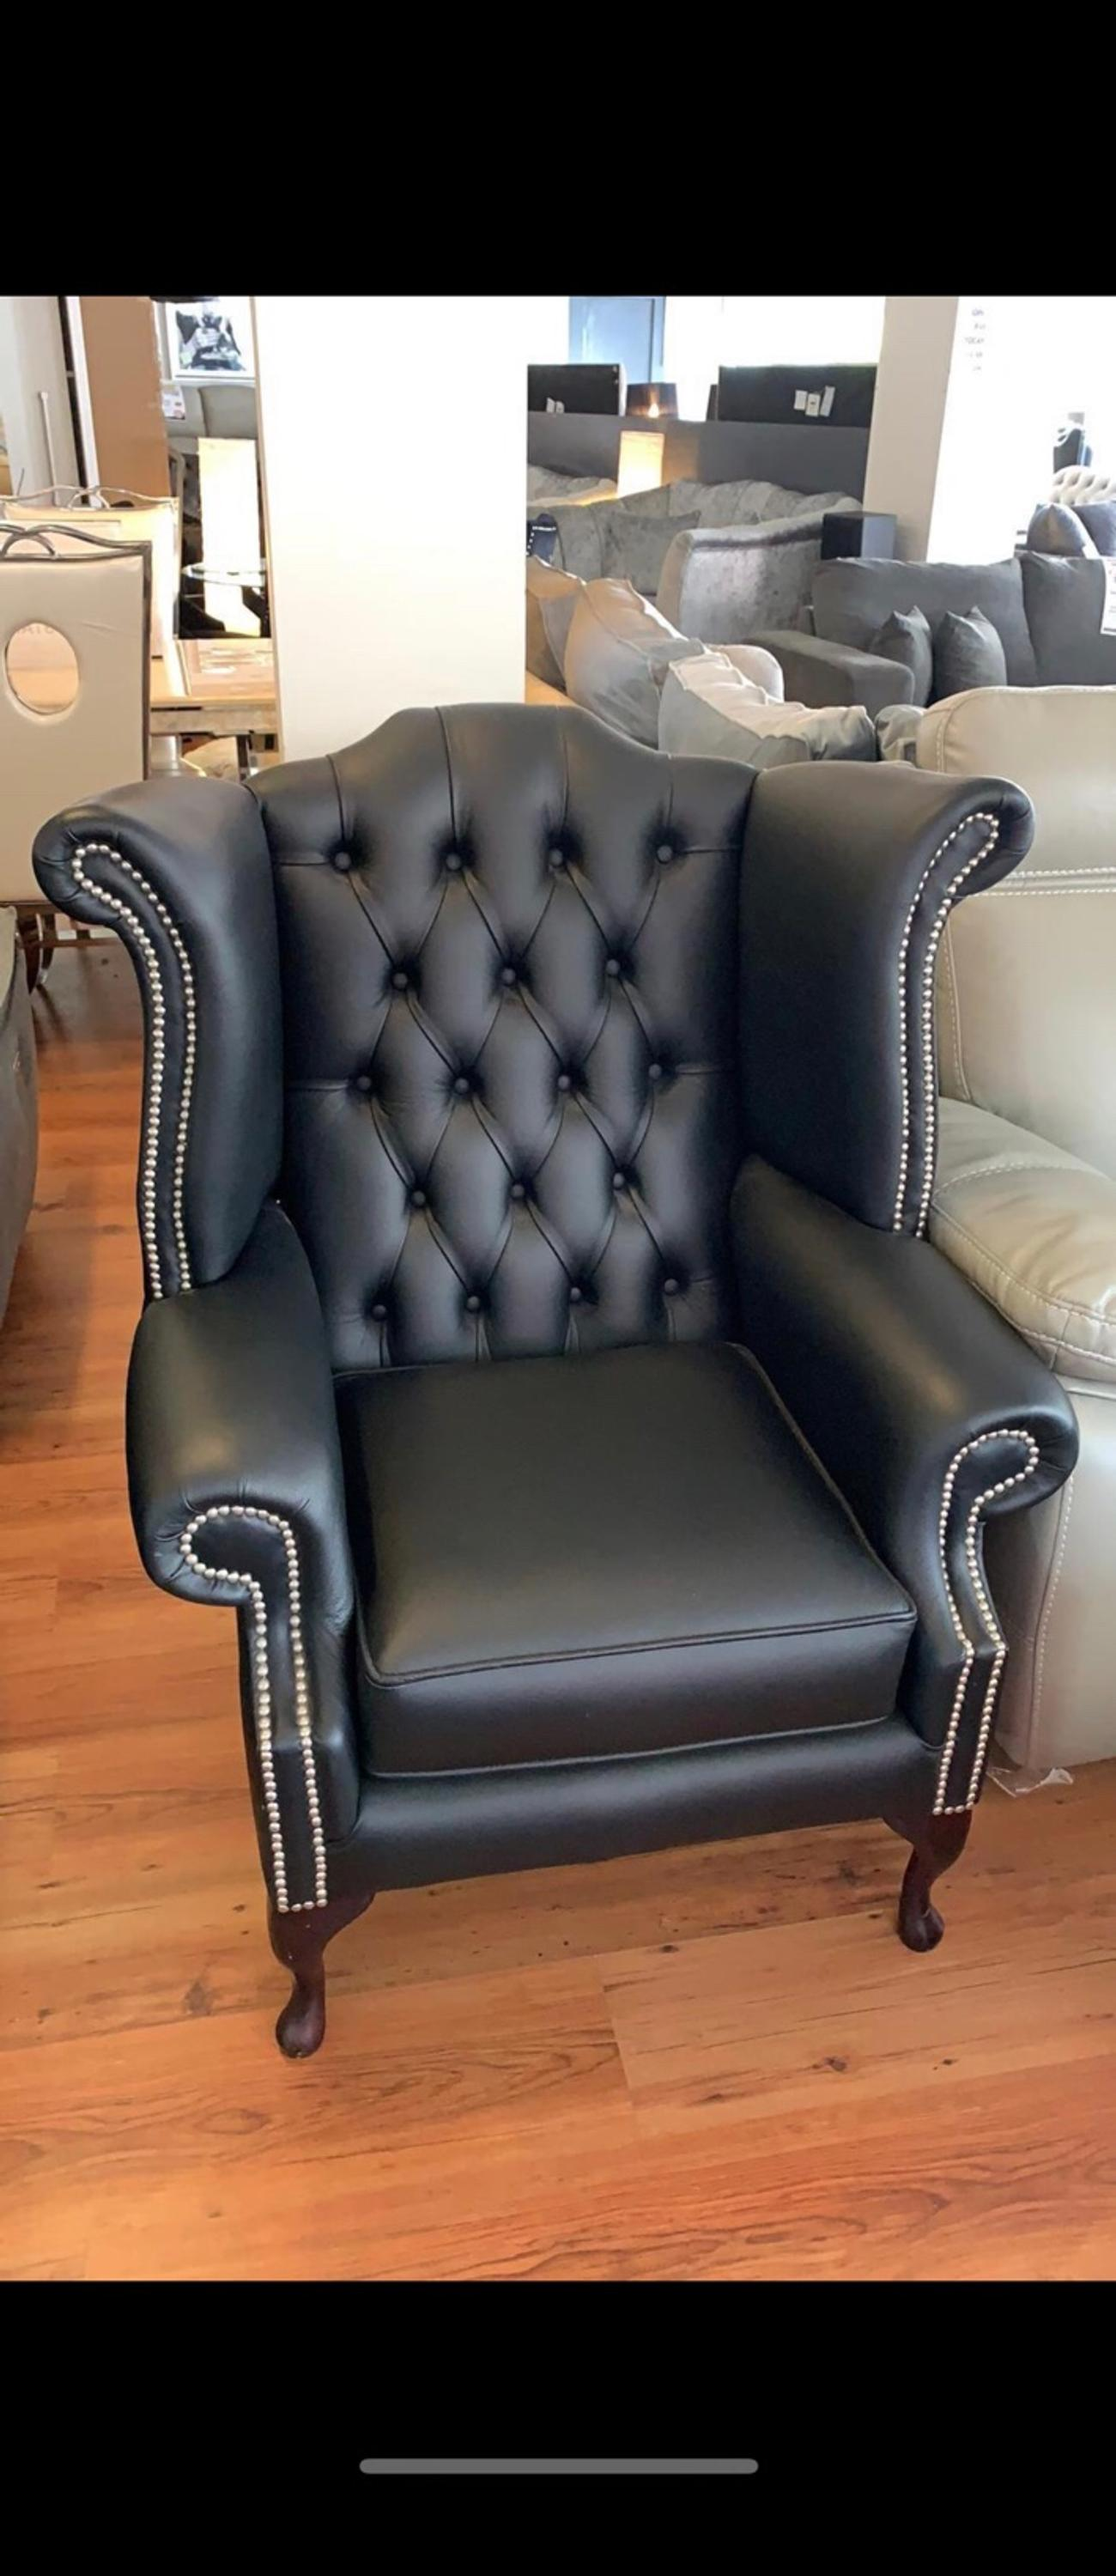 Prime Leather Chesterfield Queen Anne Arm Chair Creativecarmelina Interior Chair Design Creativecarmelinacom